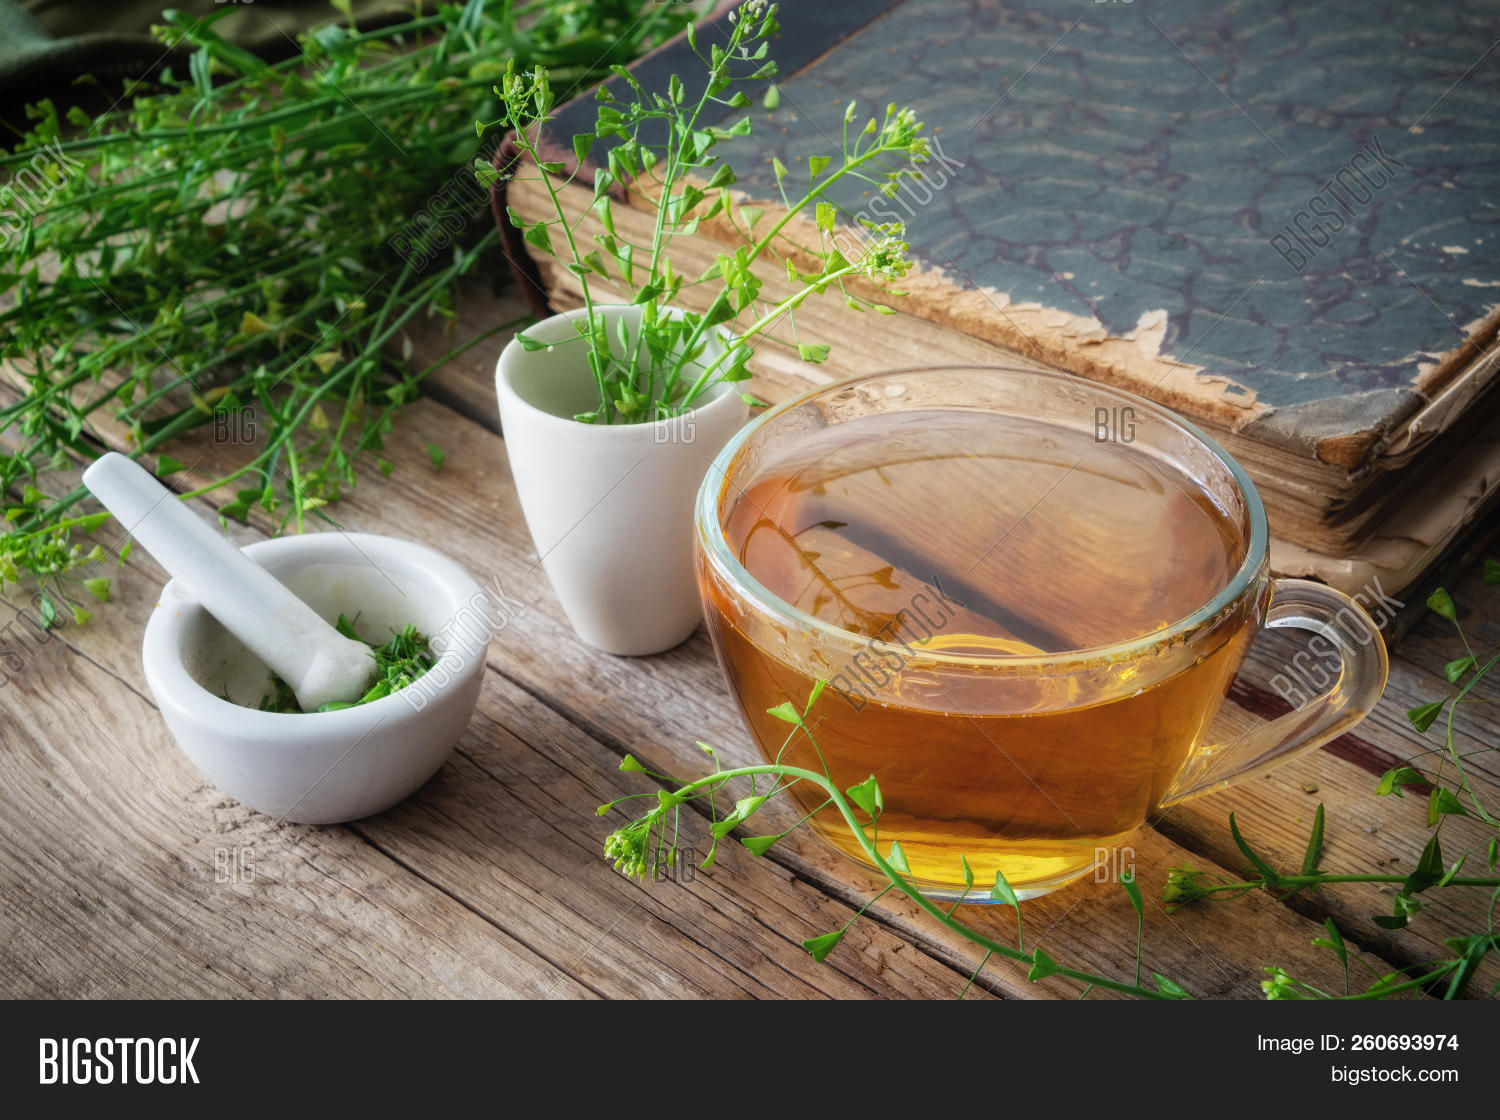 Herbal Tea Cup, Bunch Image & Photo (Free Trial) | Bigstock